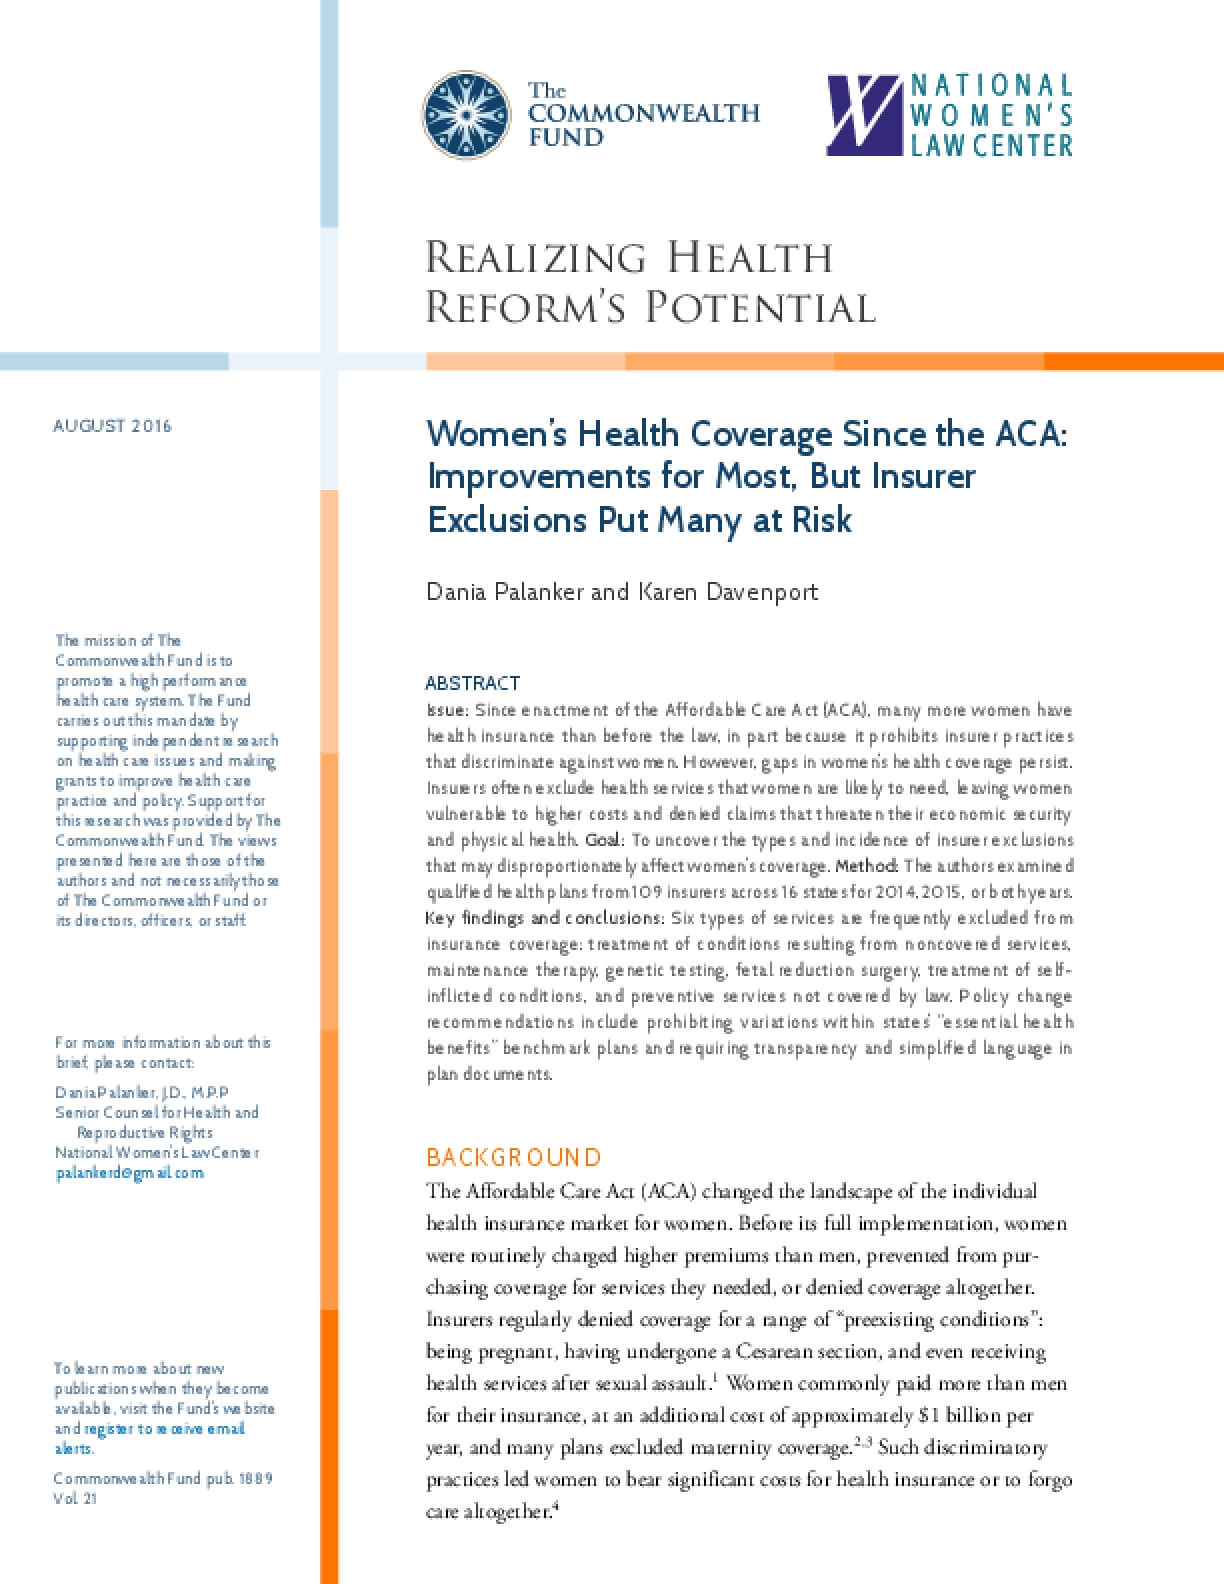 Women's Health Coverage Since the ACA: Improvements for Most, But Insurer Exclusions Put Many at Risk